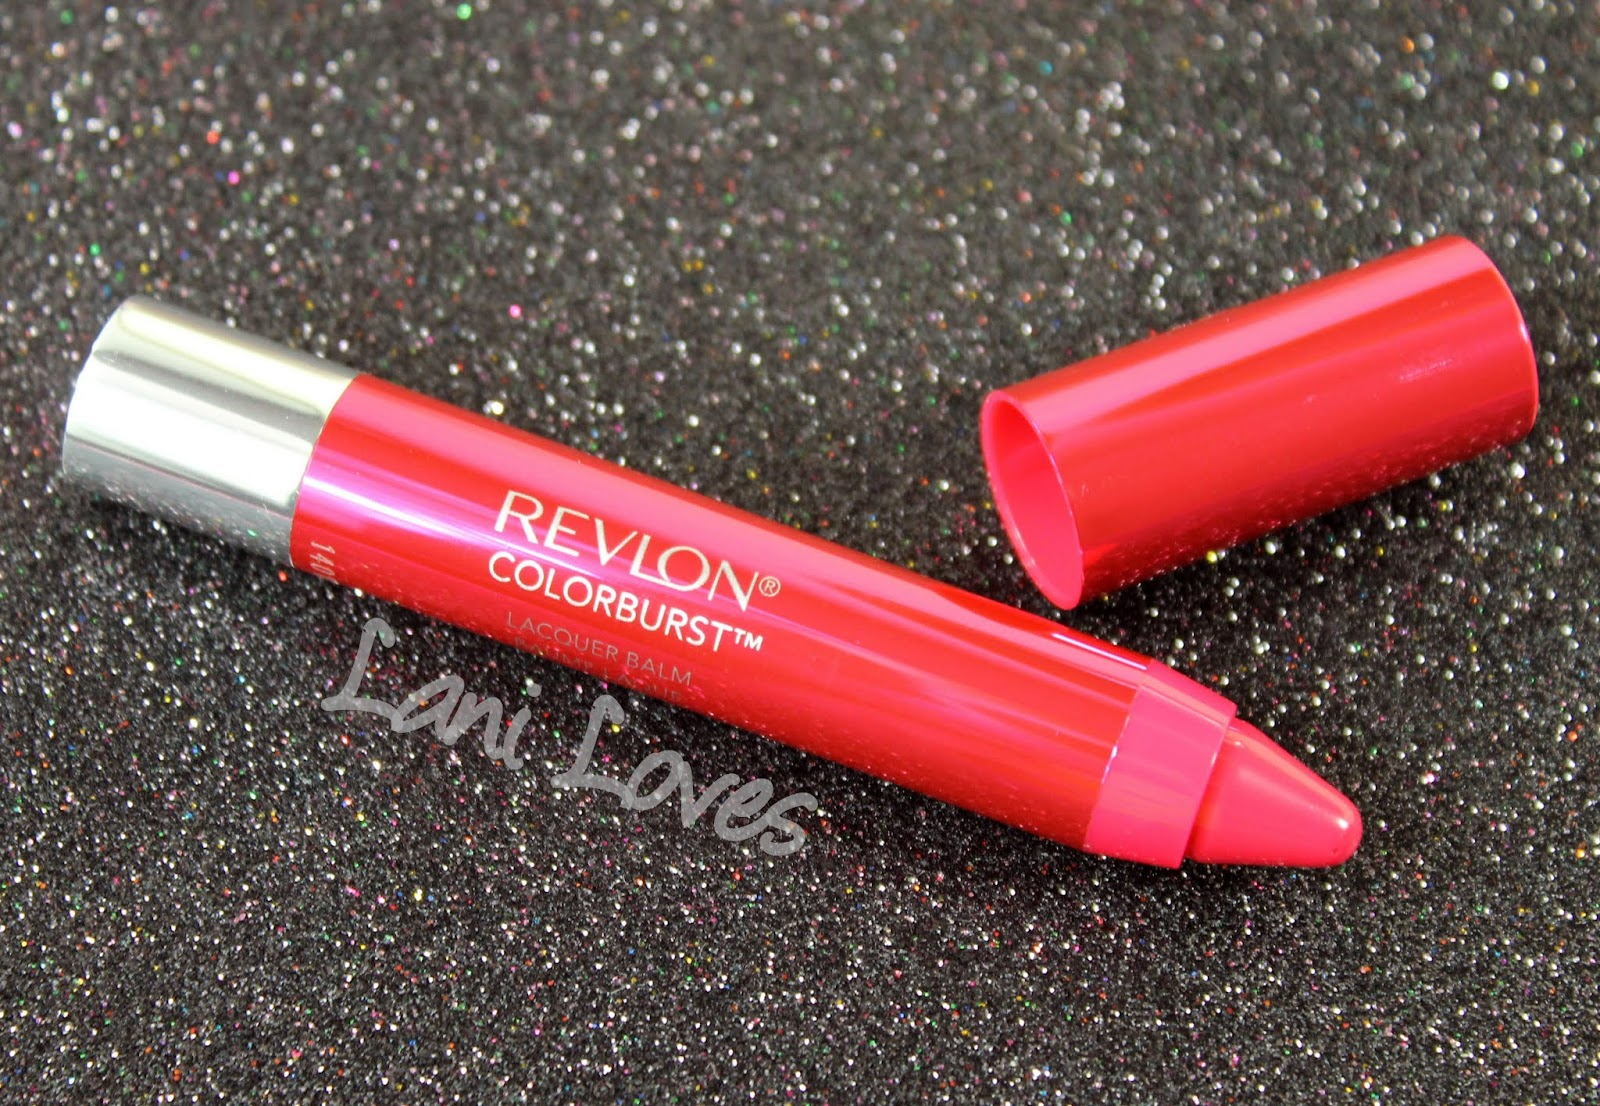 Revlon Colorburst Lacquer Balm - Vivacious Swatches & Review